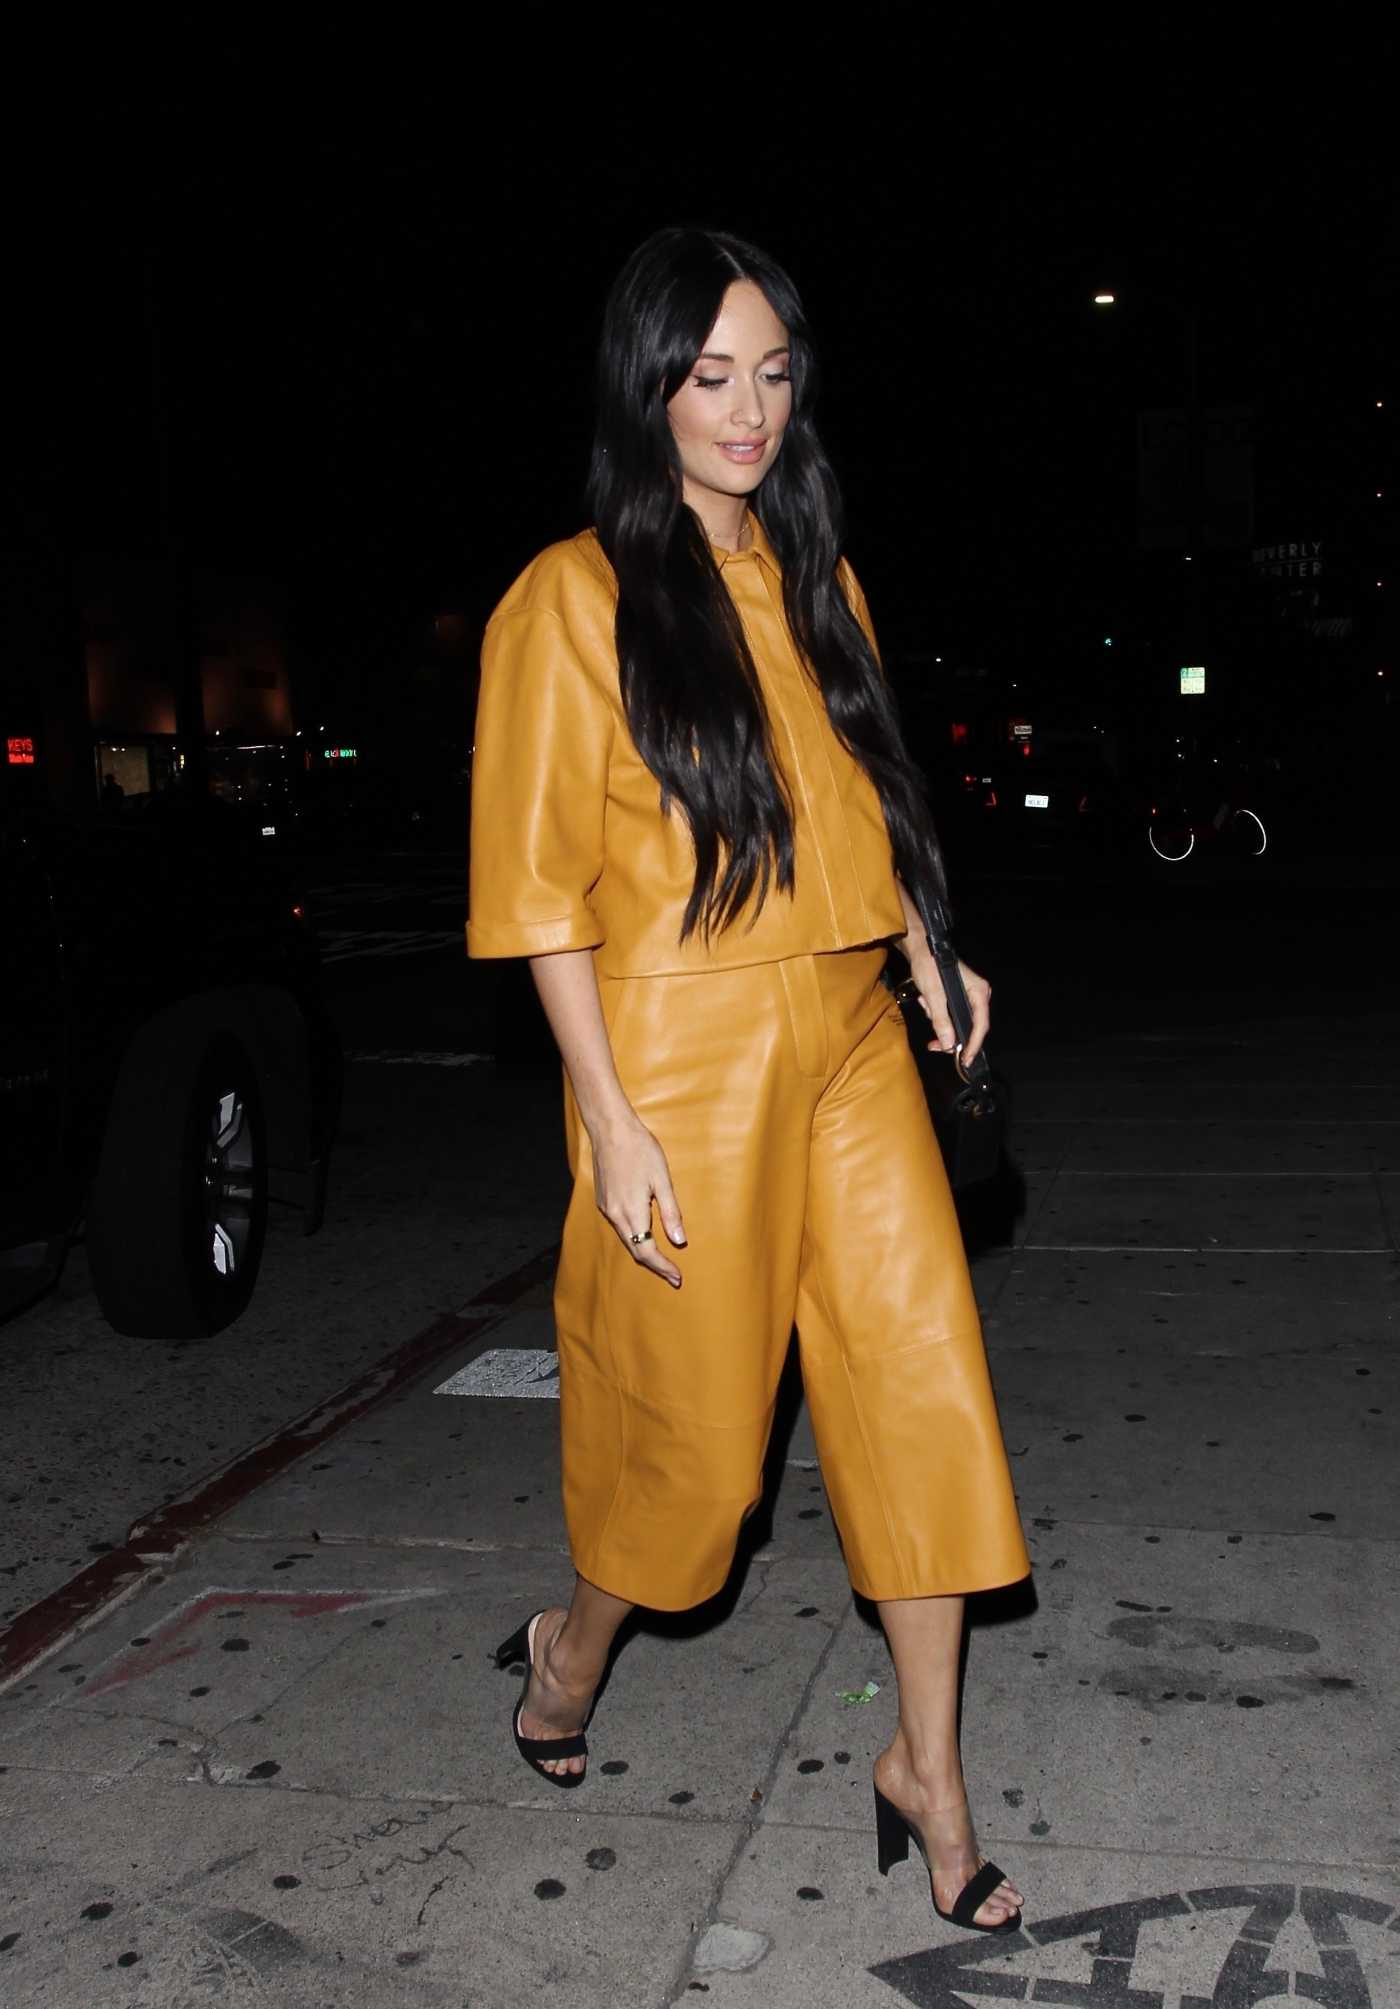 Kacey Musgraves in a Yellow Leather Suit Arrives at the Nice Guy Club in West Hollywood 08/23/2019